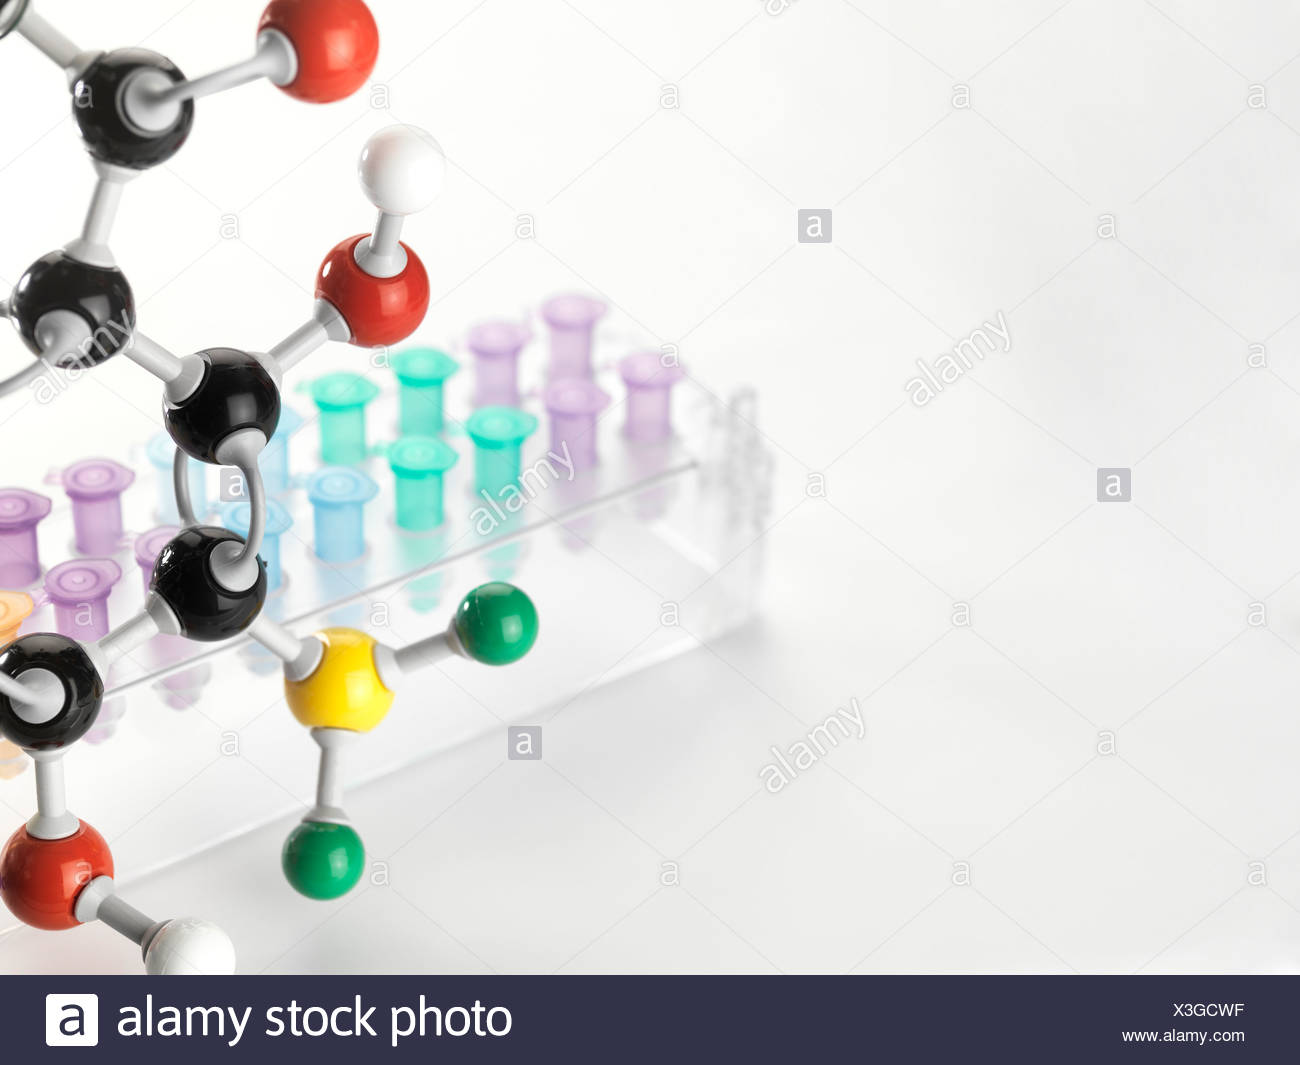 Chemical research conceptual image - Stock Image